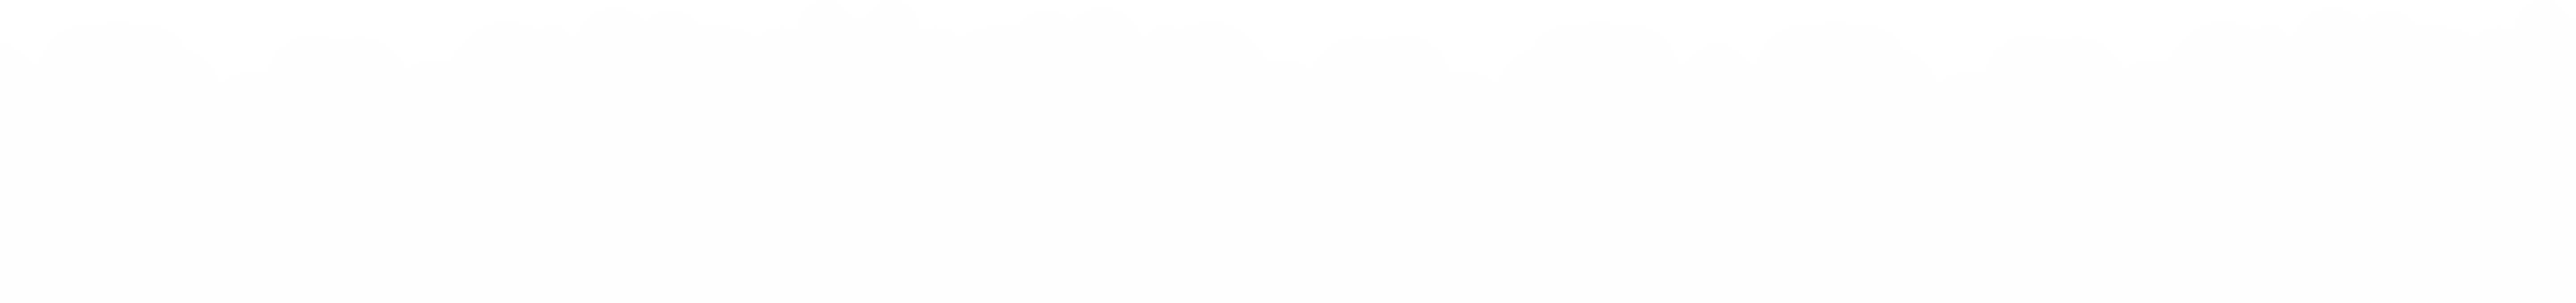 Cloud Background Layer 5